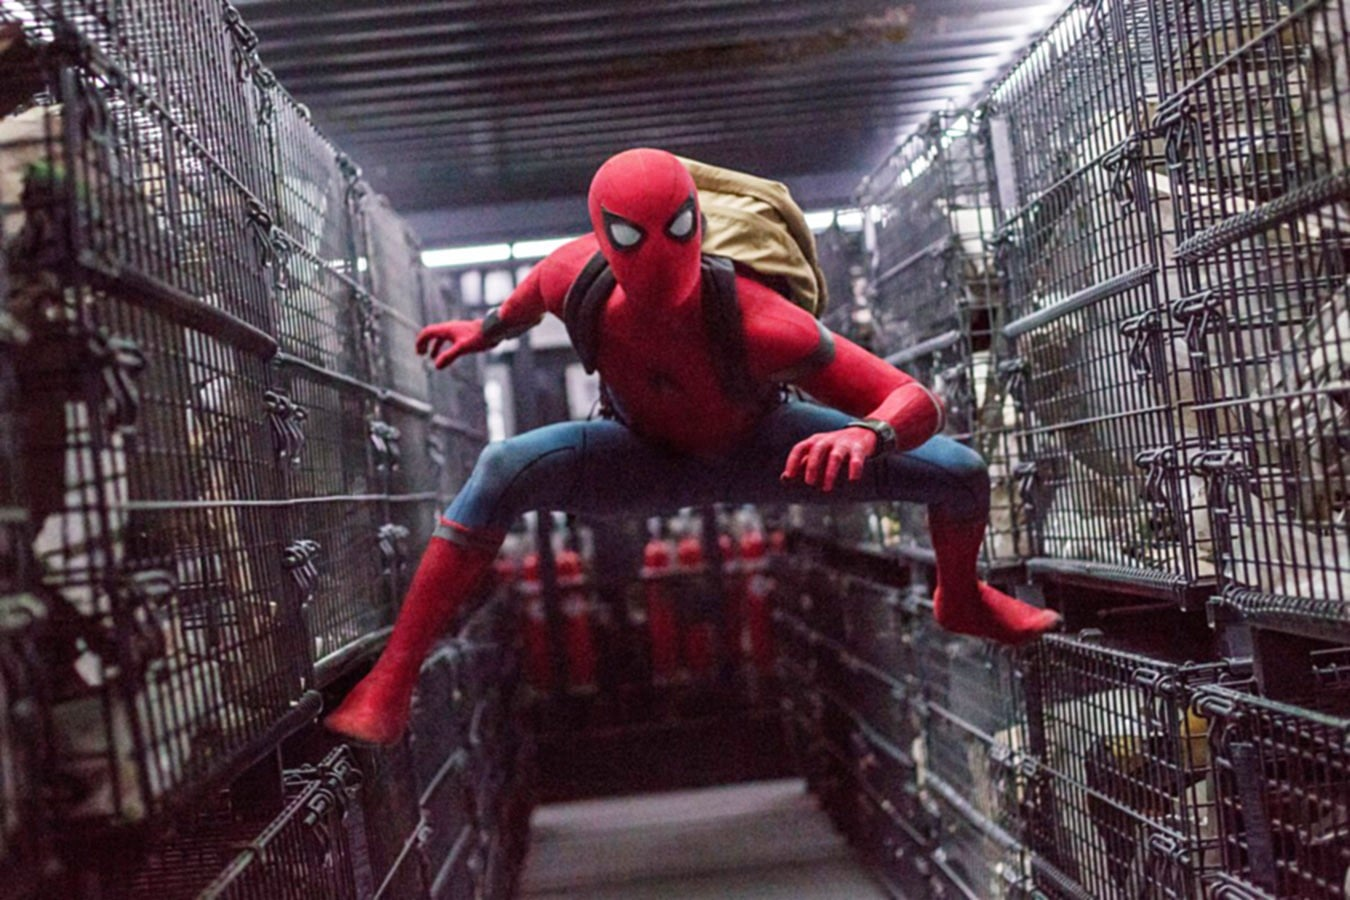 Spider-Man: Homecoming is beyond anyone's expectations